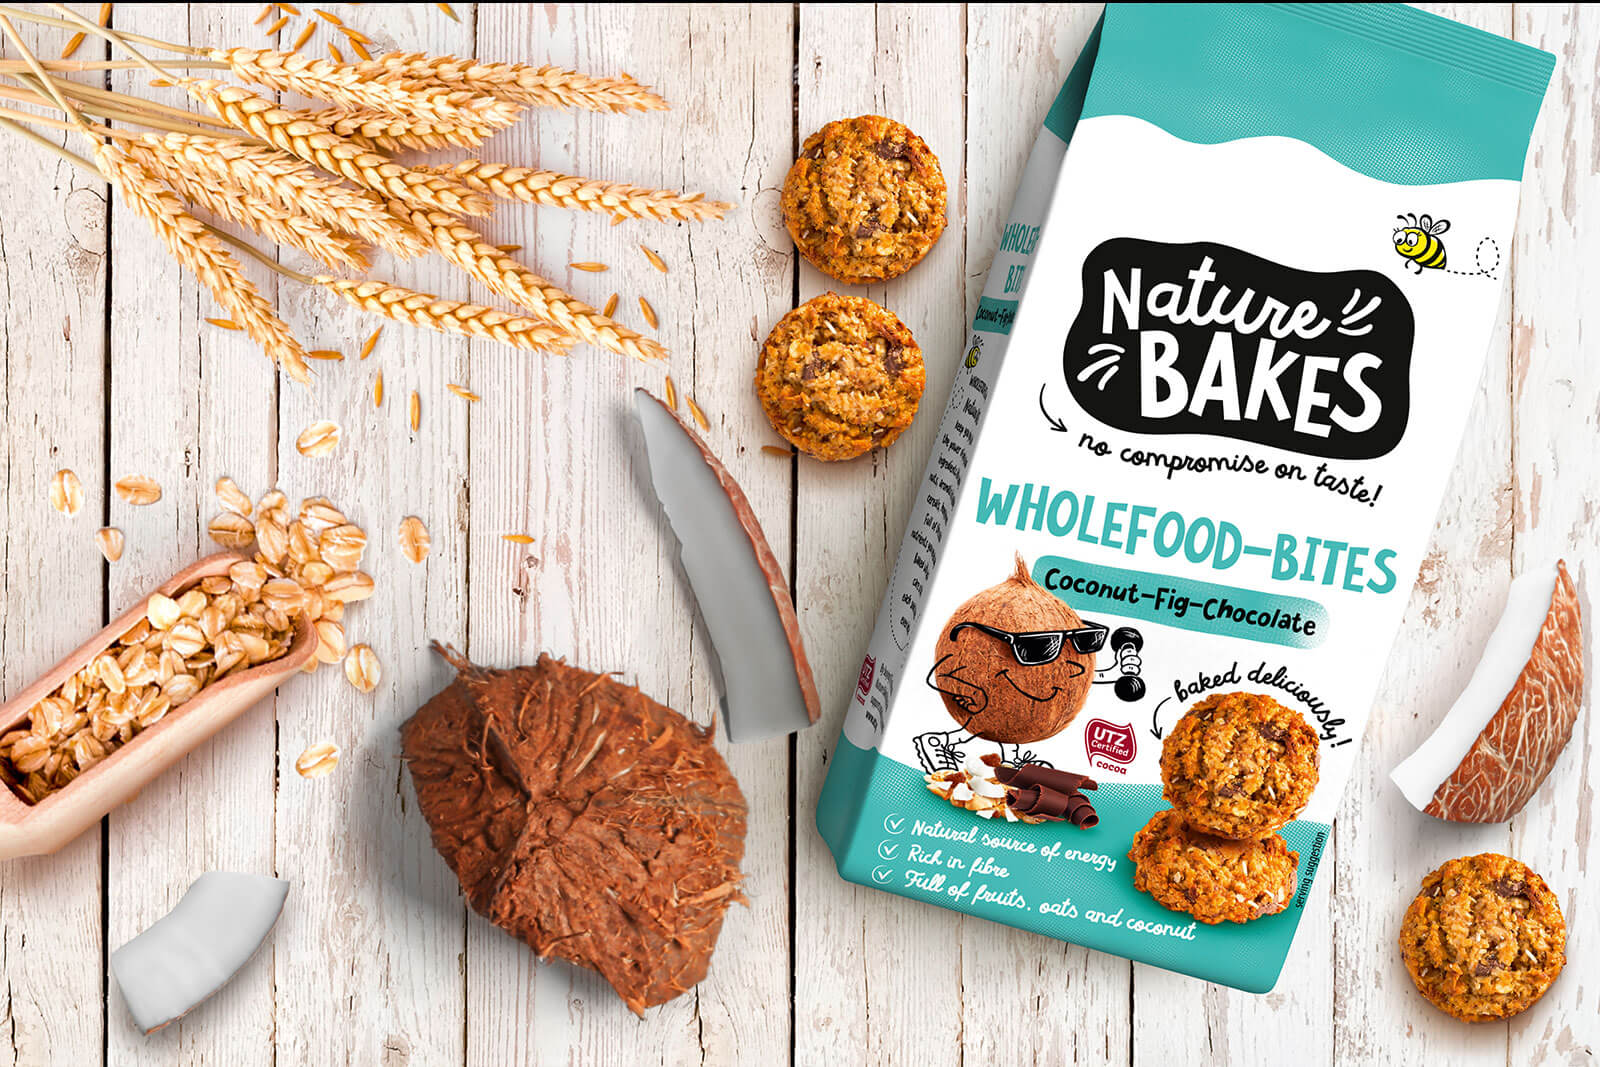 hellema nature bakes wholefood bites design packaging rubicon